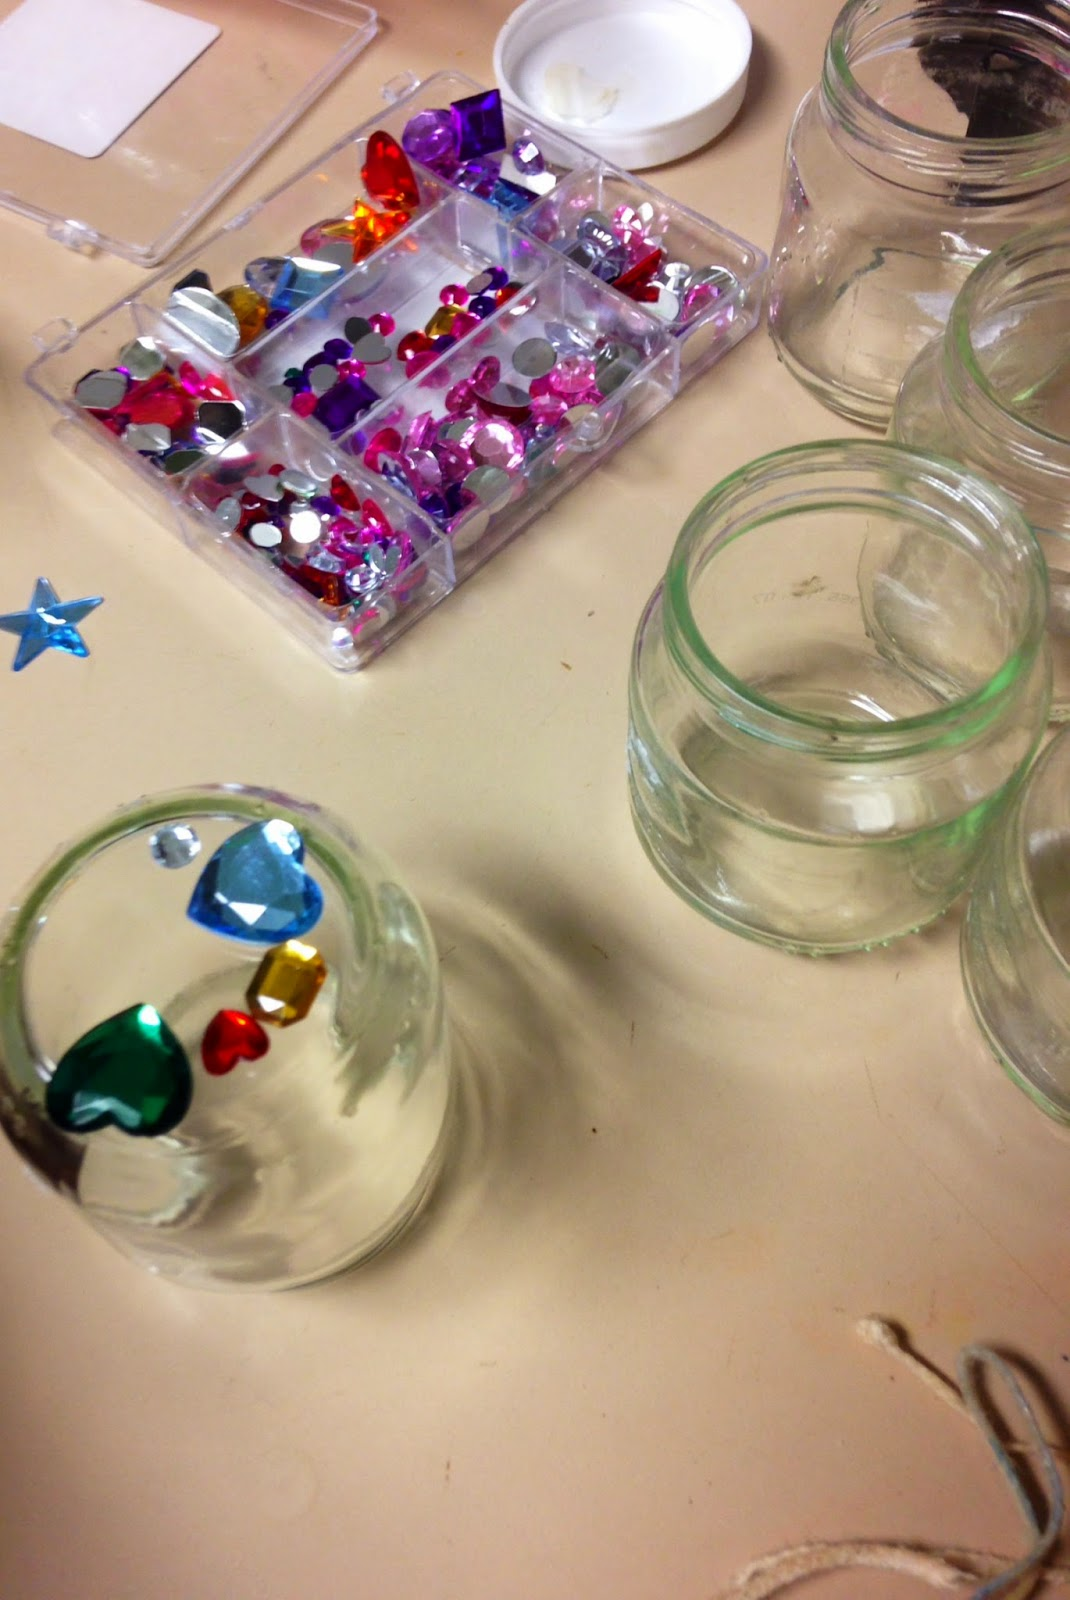 Diy kids candle craft outnumbered 3 to 1 for Diy candle crafts